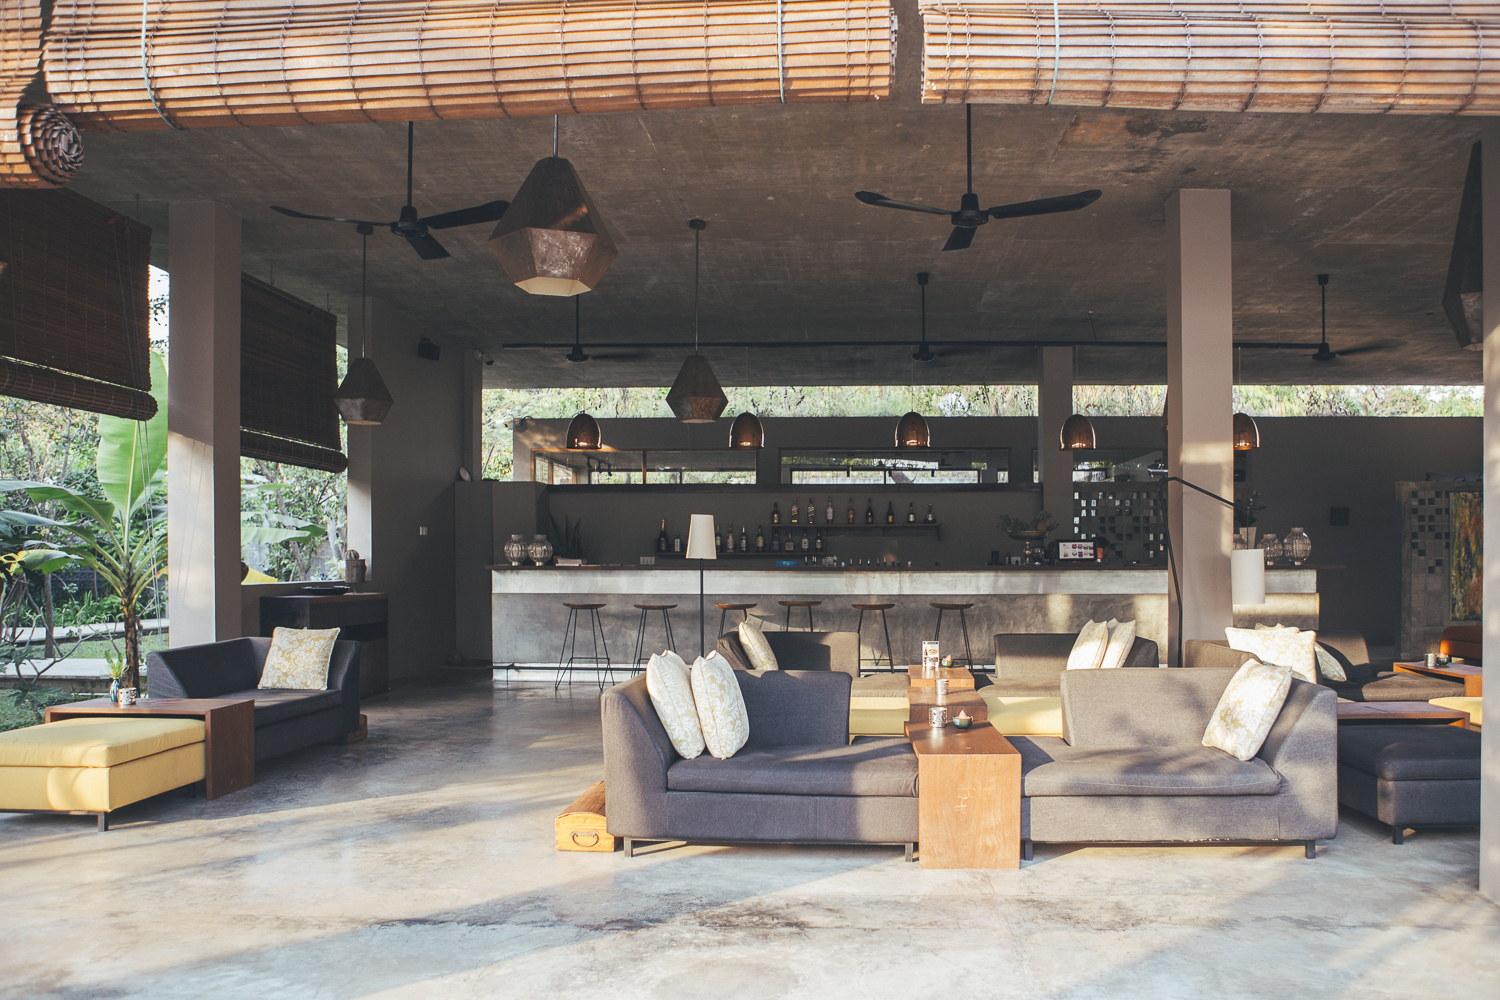 Siem Reap Hotels: templation bar and restaurant